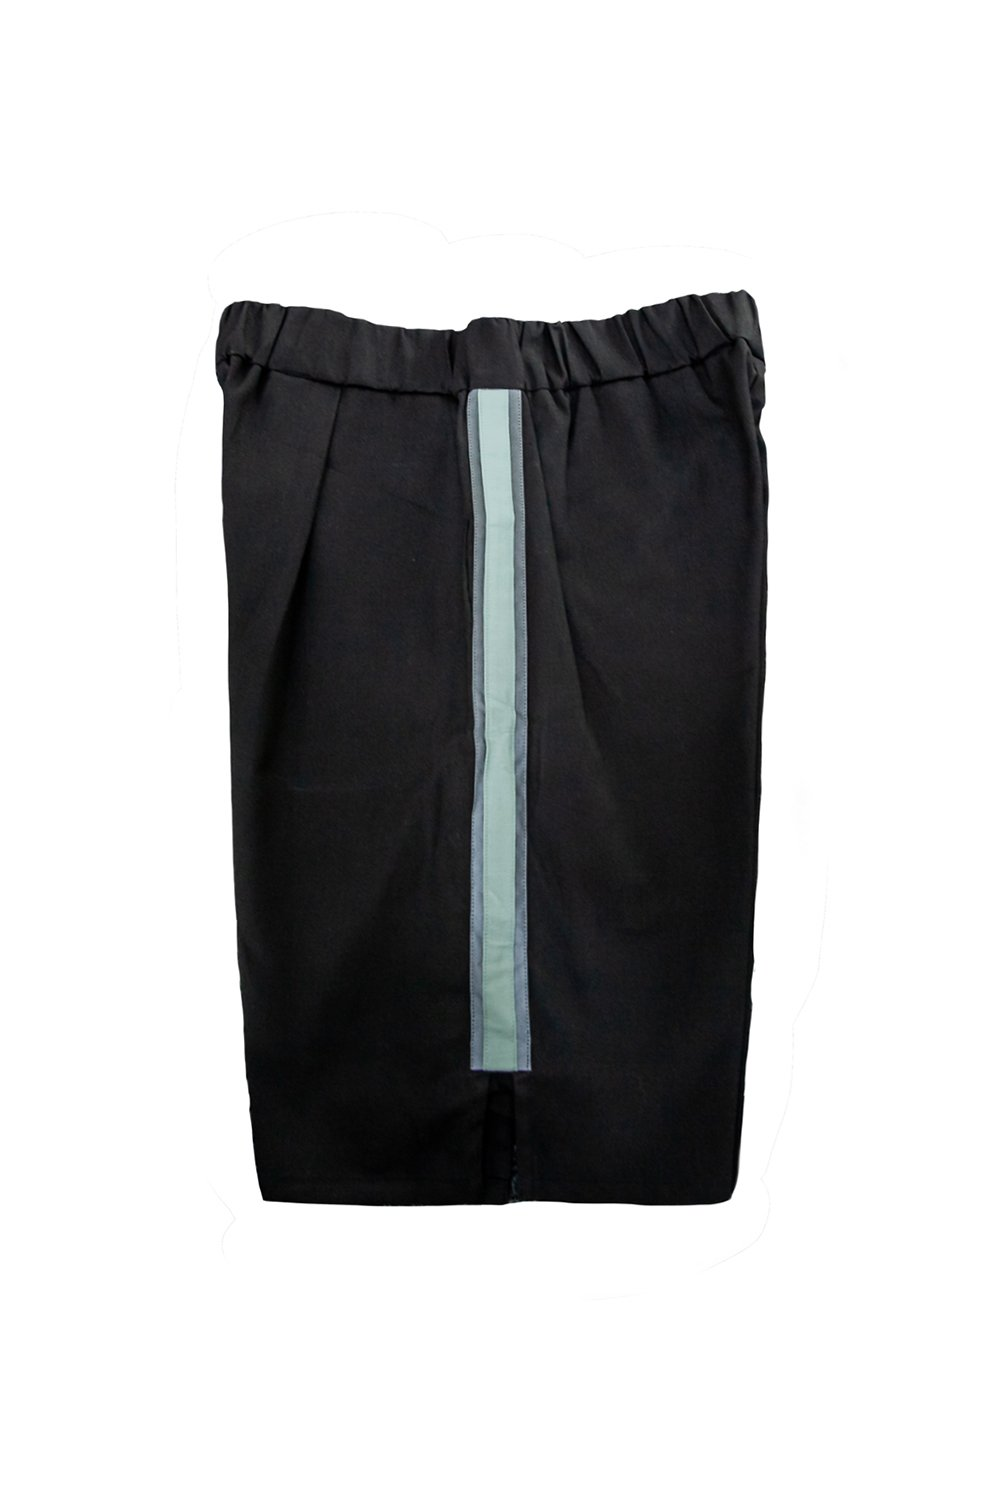 Axis Black Shorts with Orbit-Green Reflective Panel